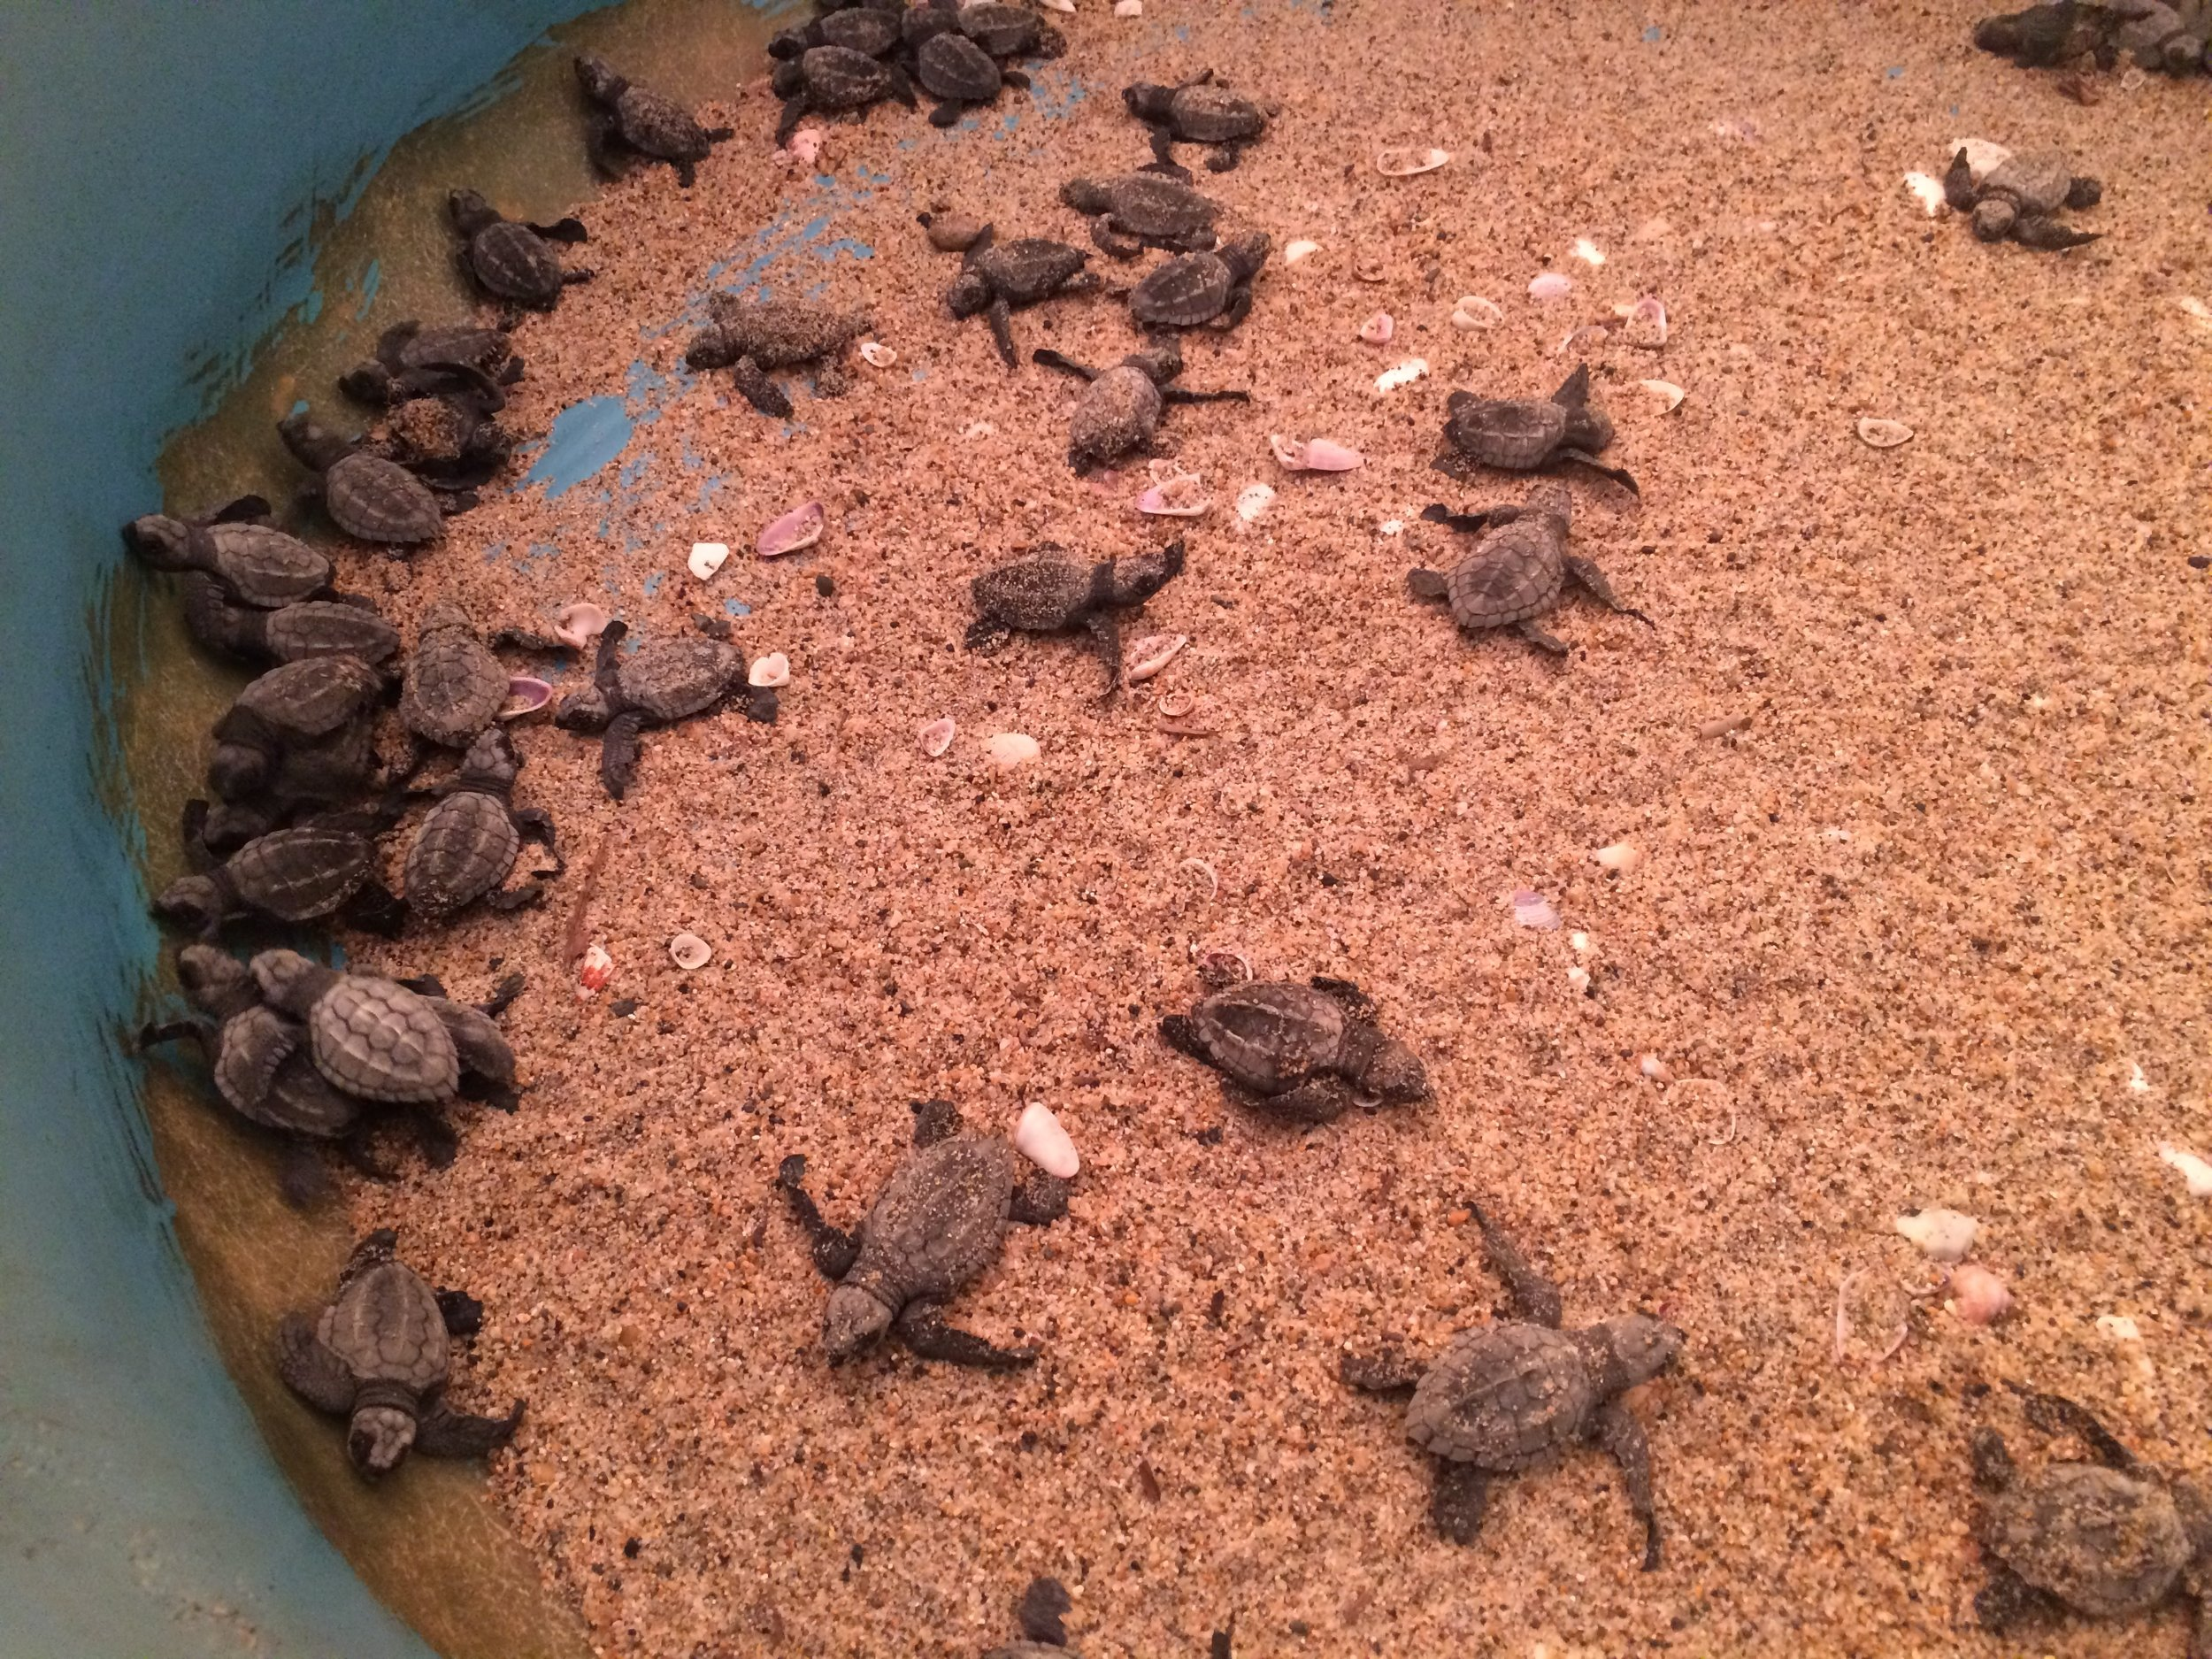 Hours-old Oliver's Ridley sea turtle hatchlings.